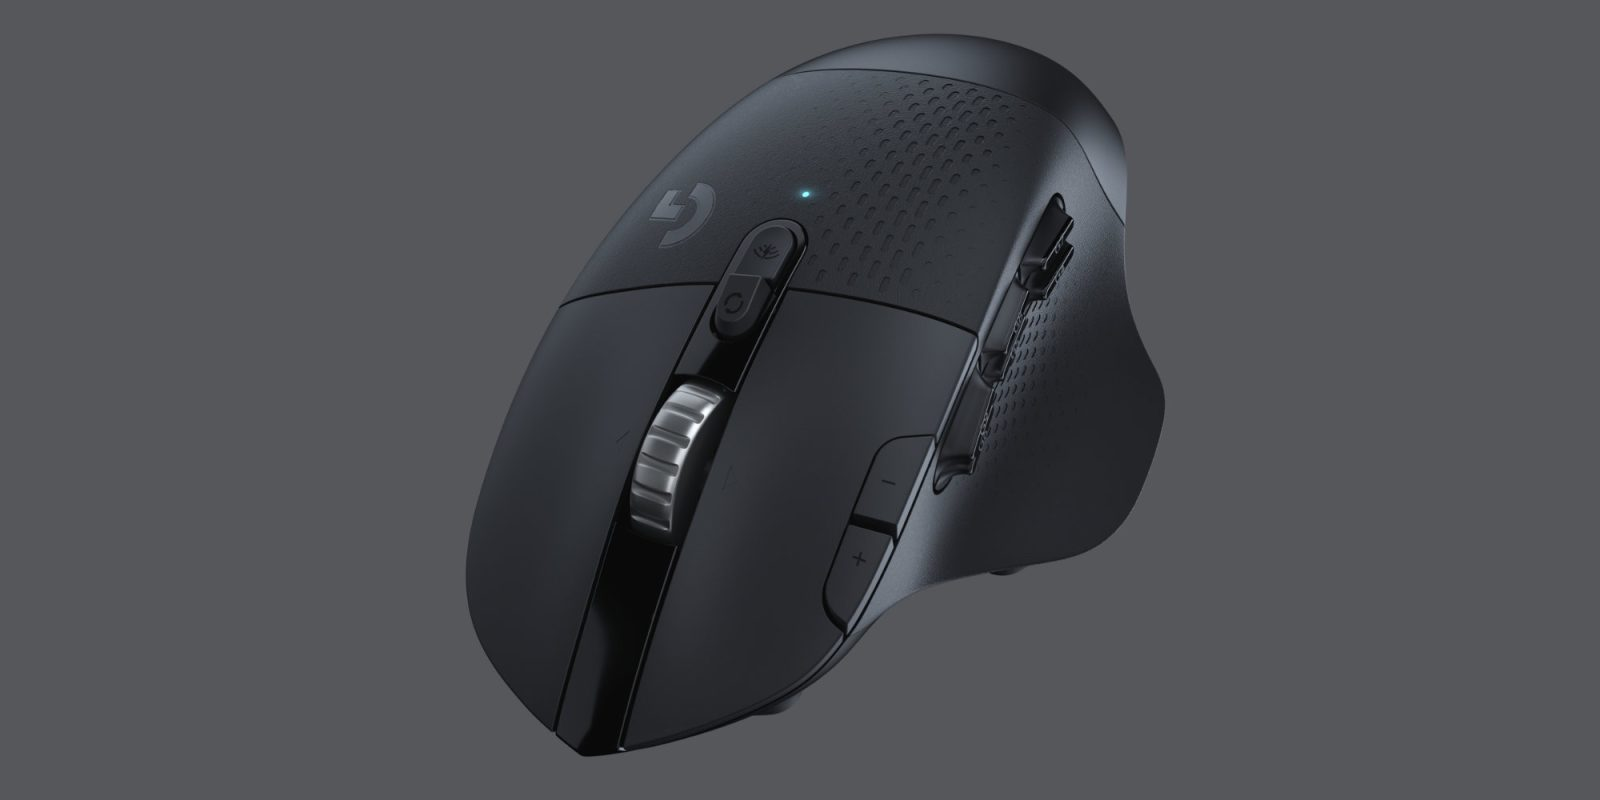 Logitech's new gaming mouse is lag-free, has 15 programmable controls, more